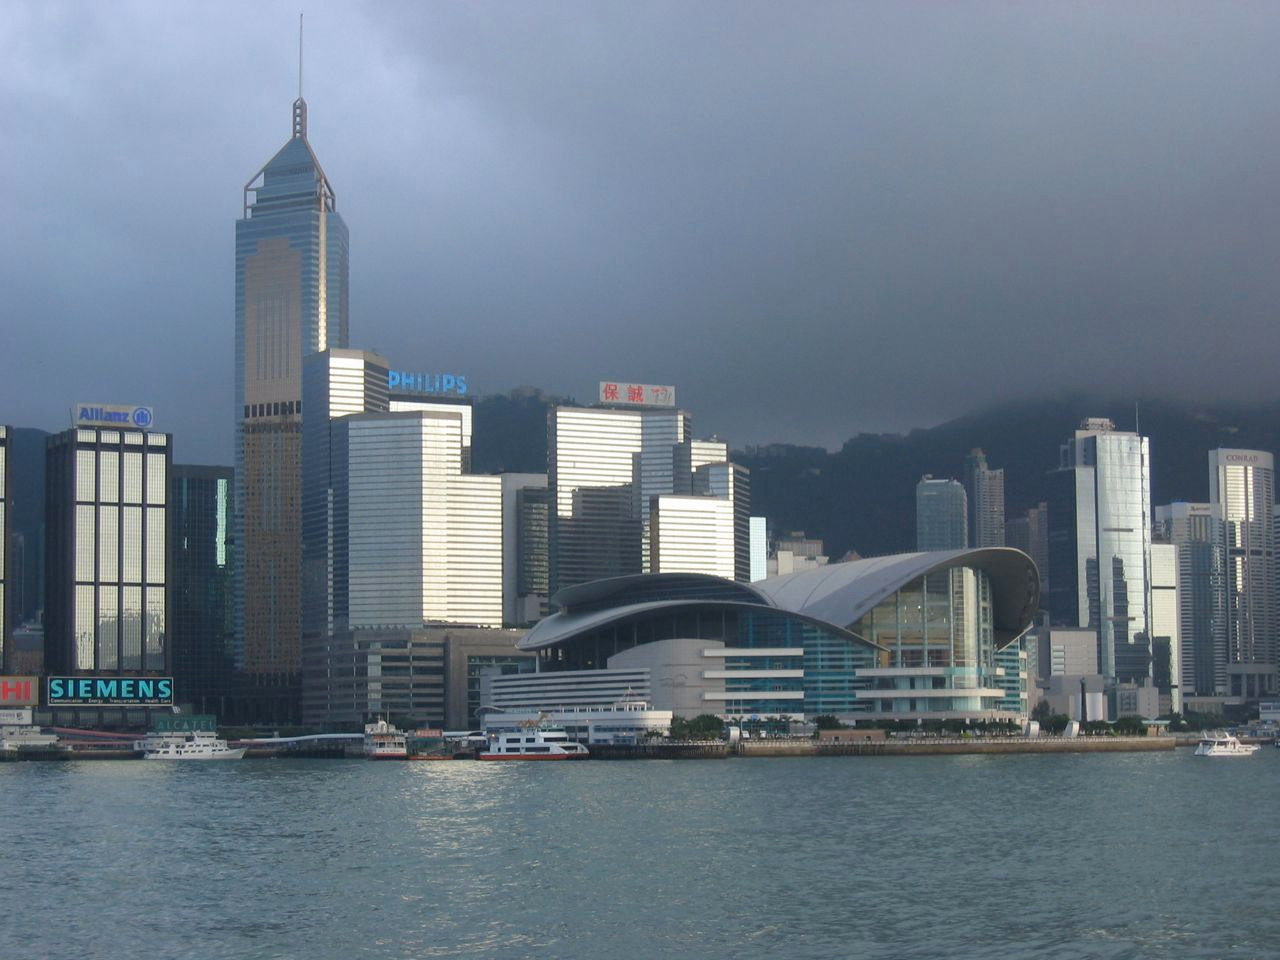 Photograph Wanchai in Hong Kong by Philip Leong on 500px